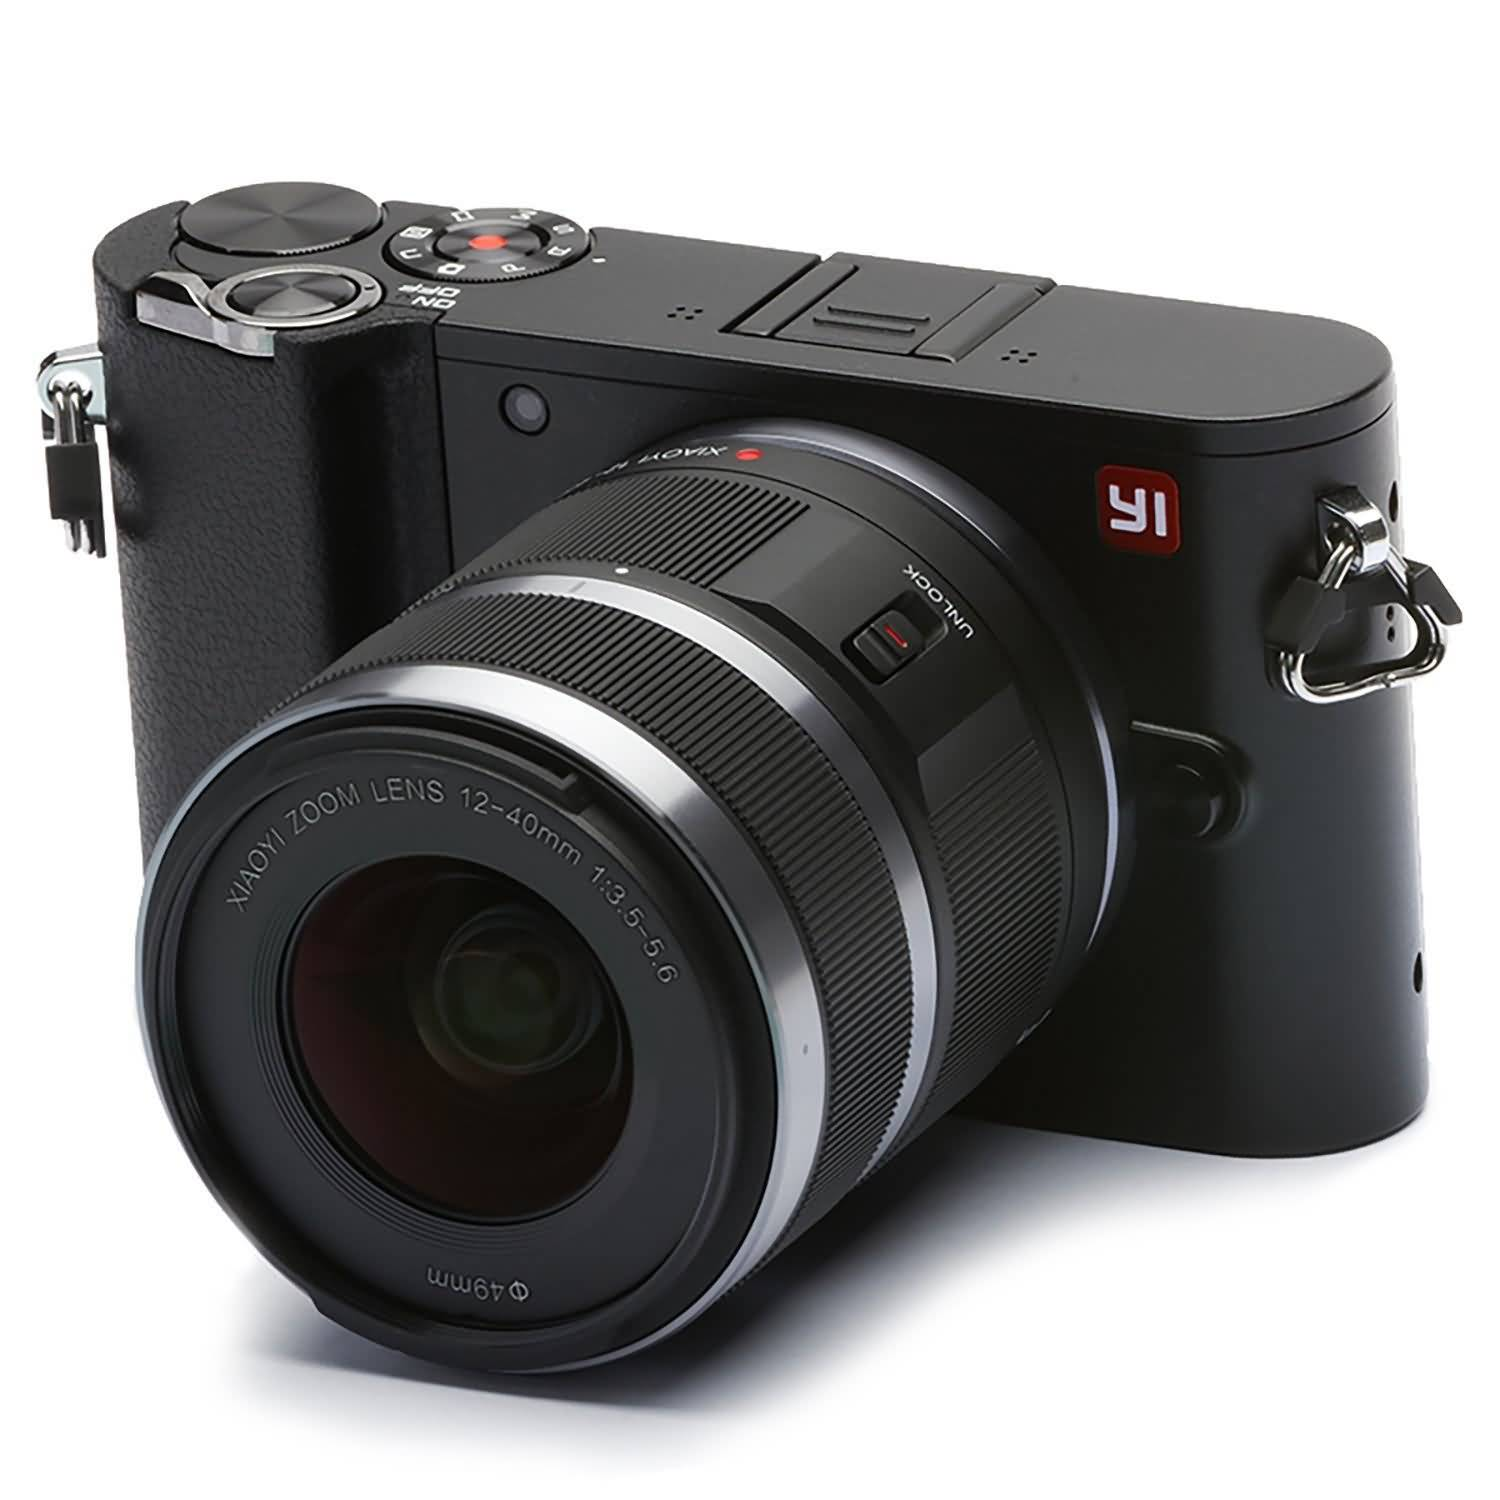 yi-m1-mirrorless